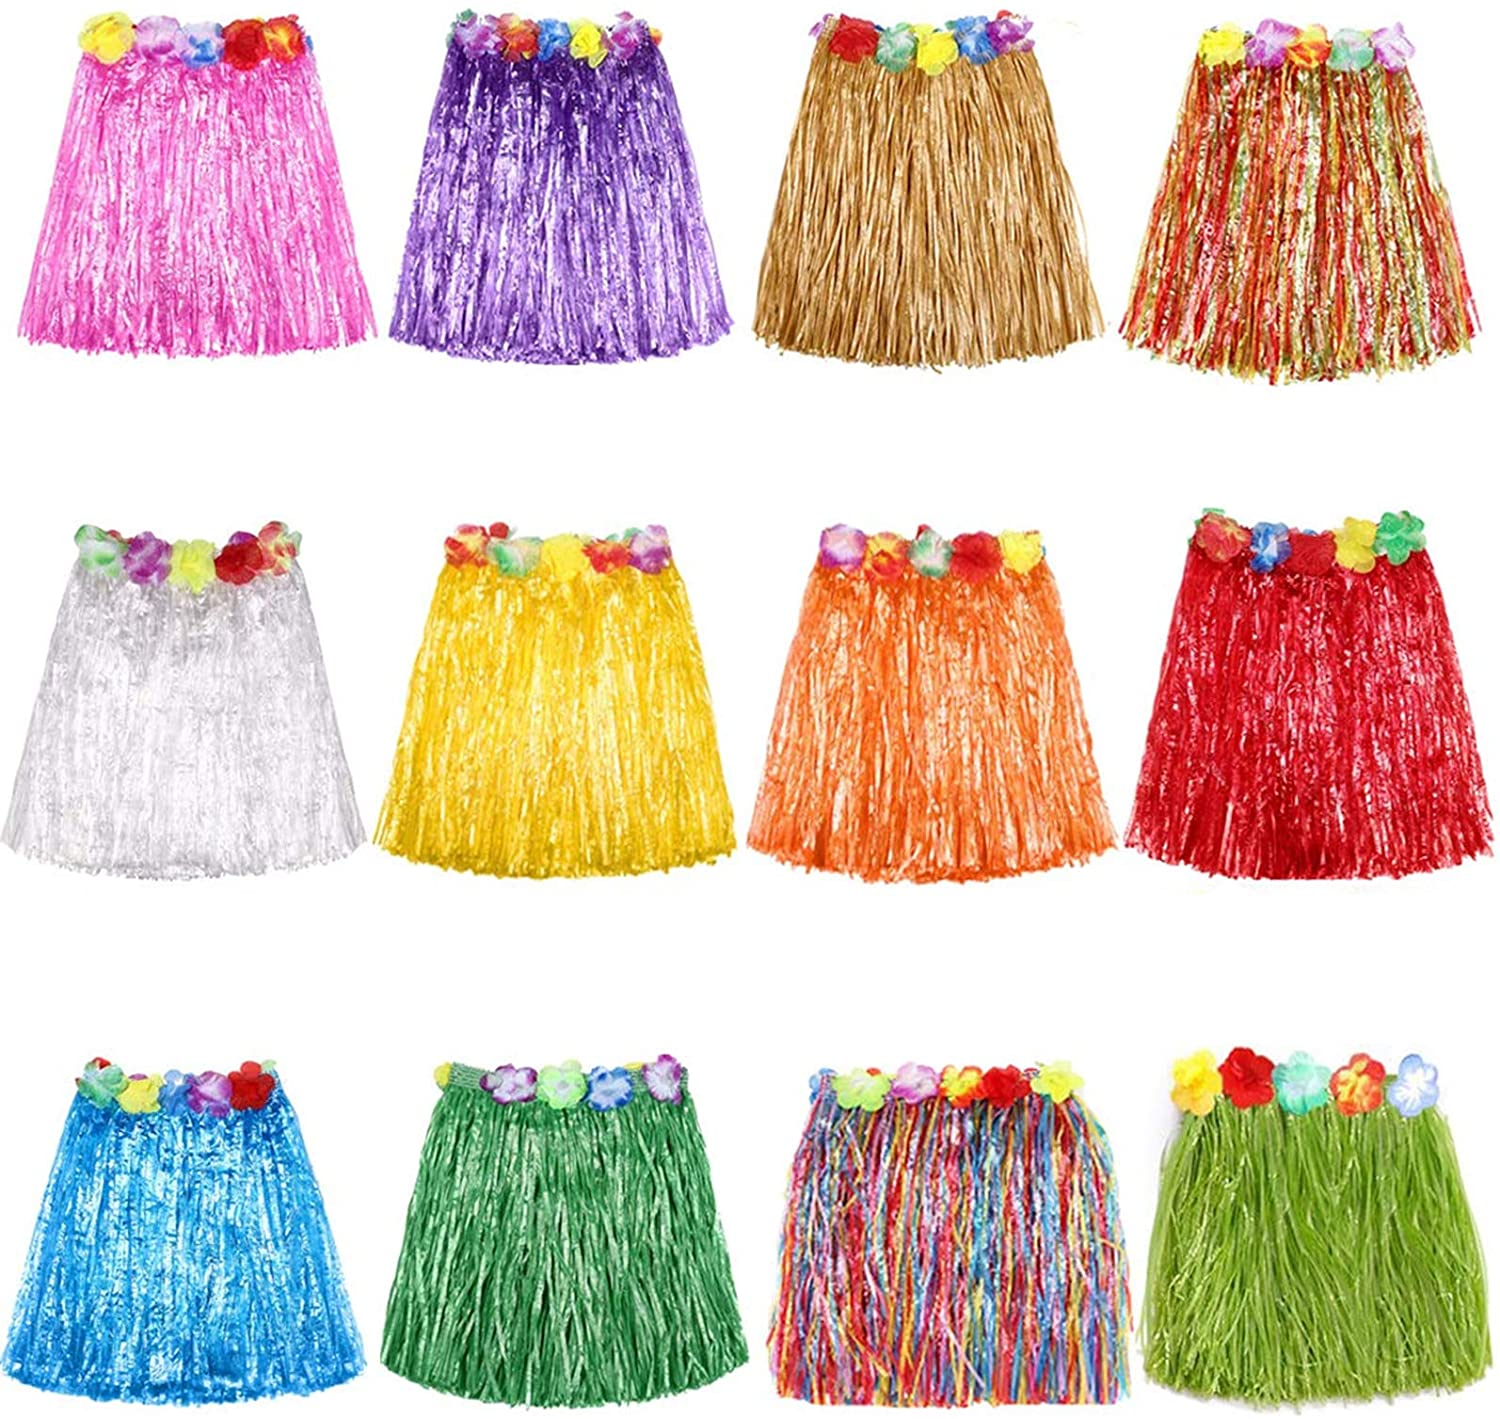 Grass Skirt Hawaiian Luau Hula Skirts Party Decorations Favors Supplies Multicolor Grass skirts for kids Elastic Hibiscus Flowers Tropical Hula Skirt for Party, Birthdays, Celebration 12 PACK